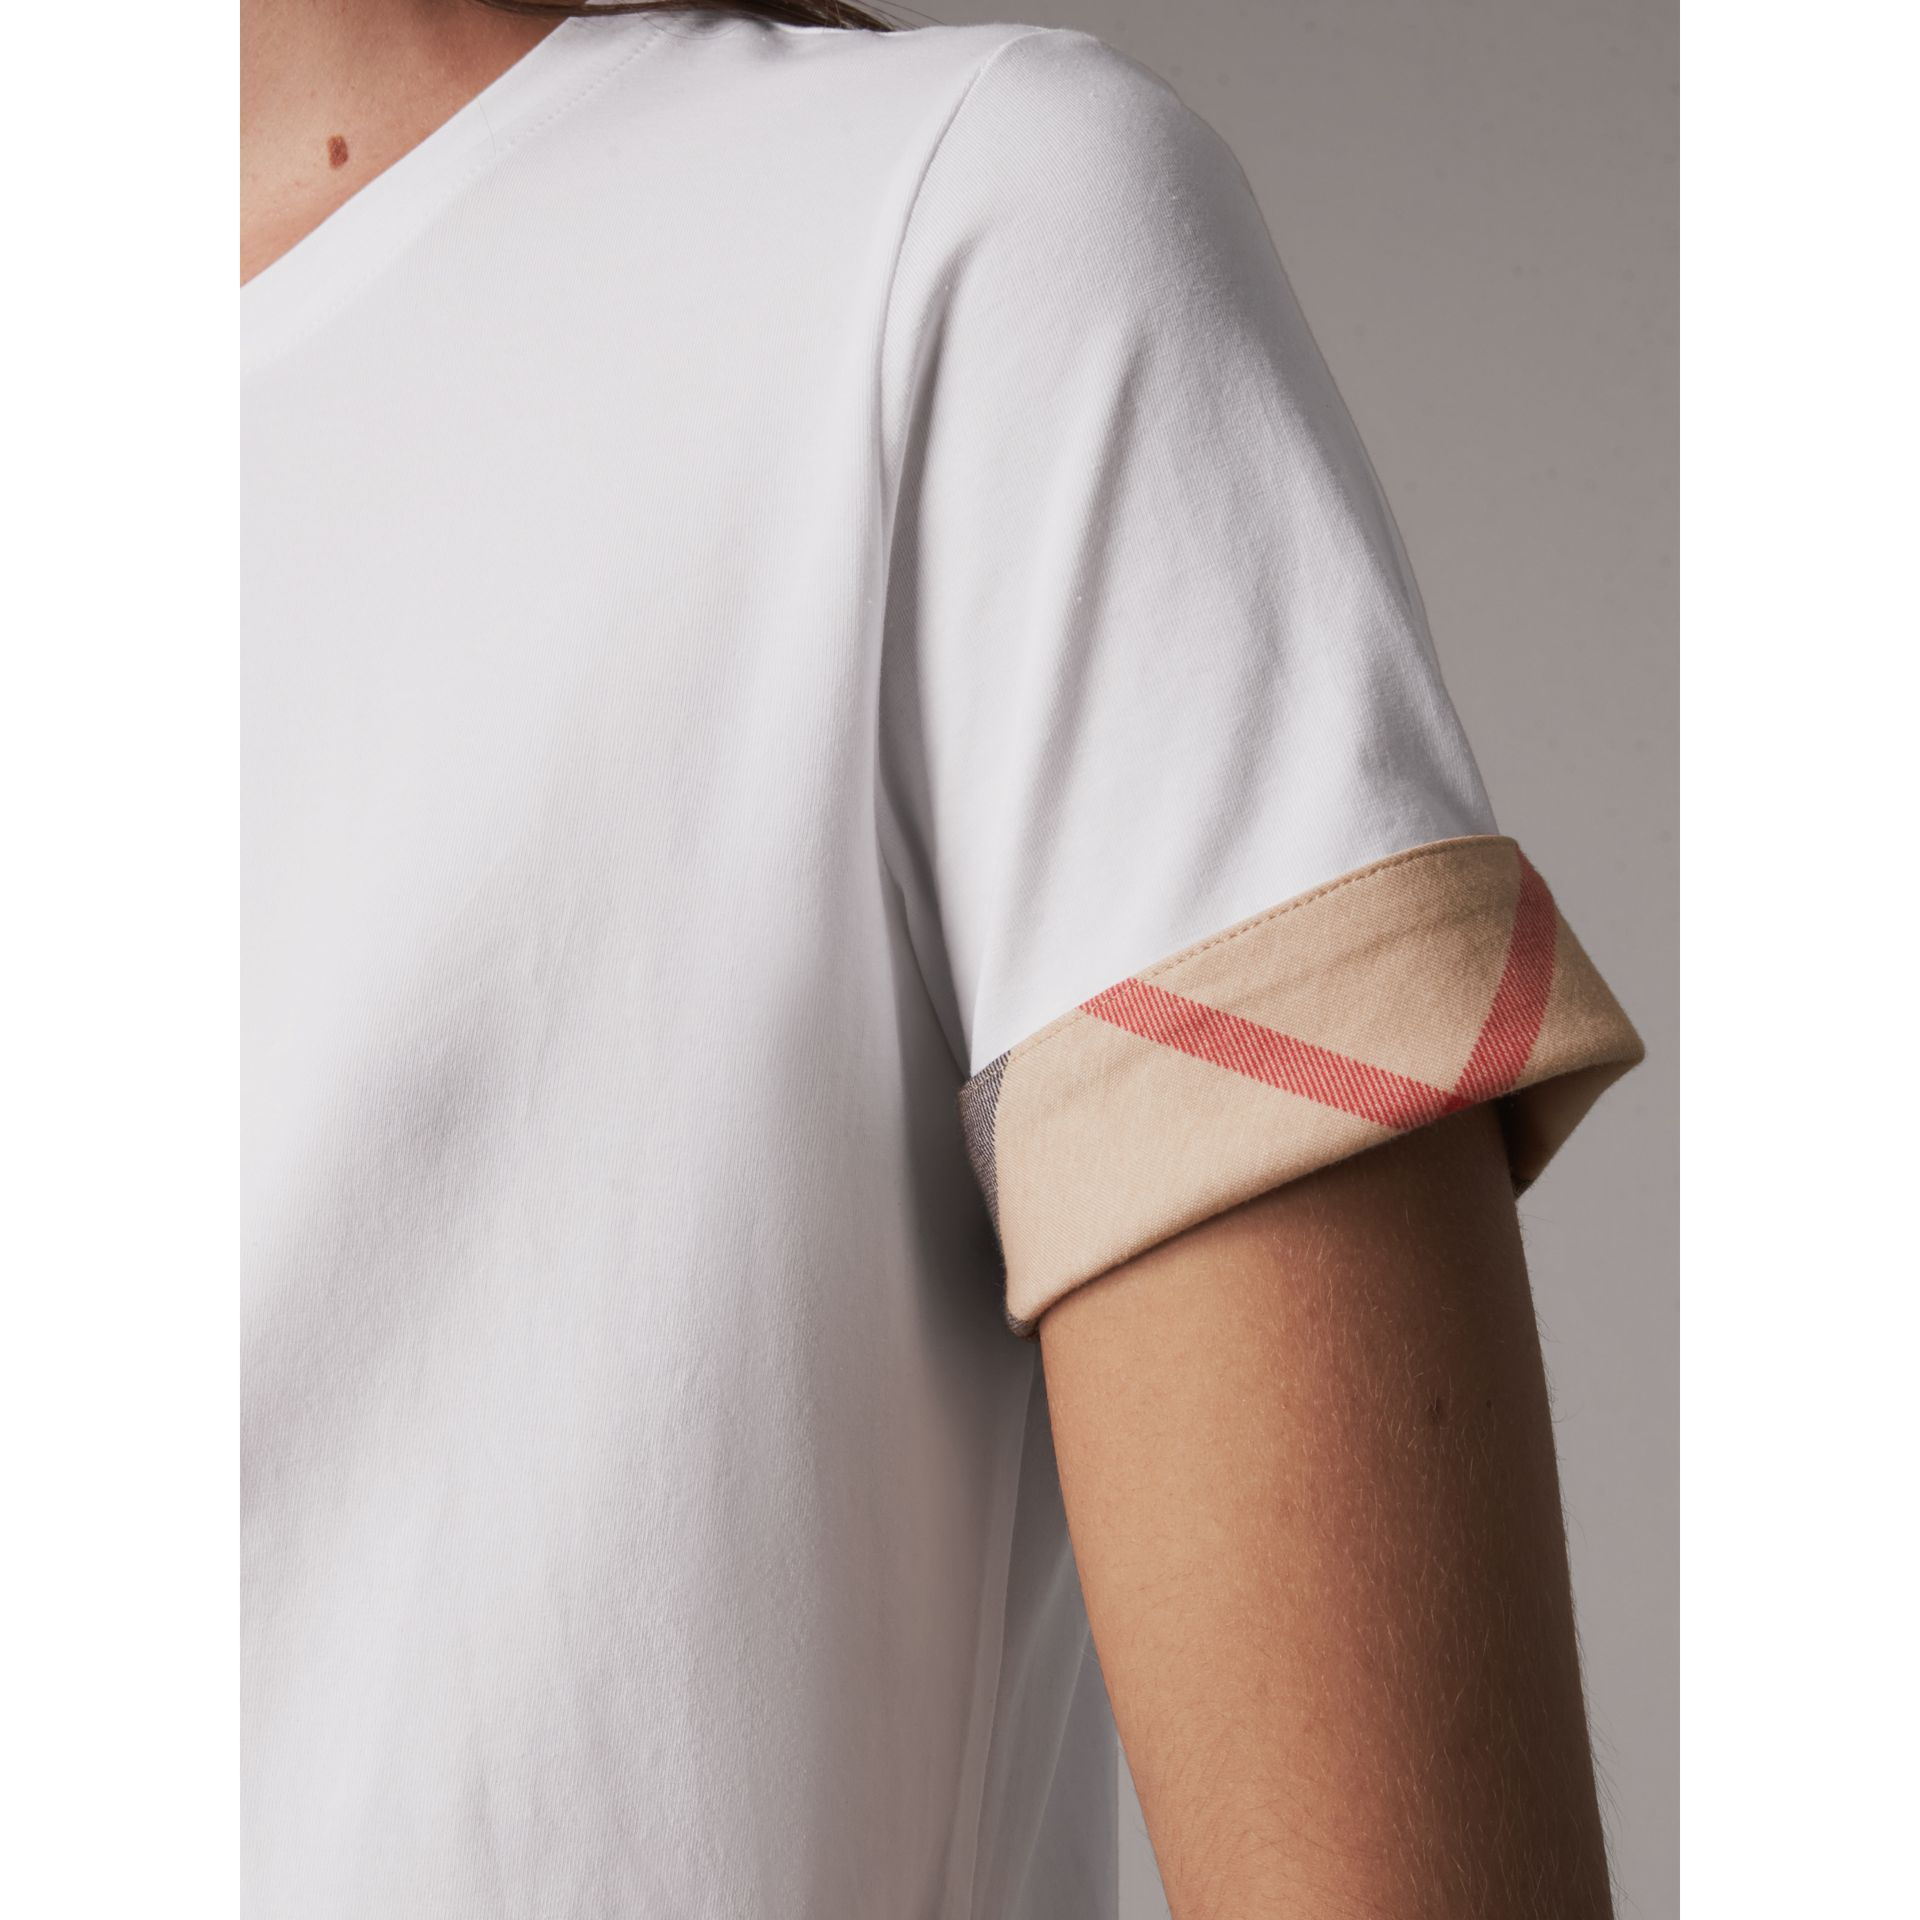 Check Cuff Stretch Cotton T-Shirt in White - Women | Burberry Canada - gallery image 1